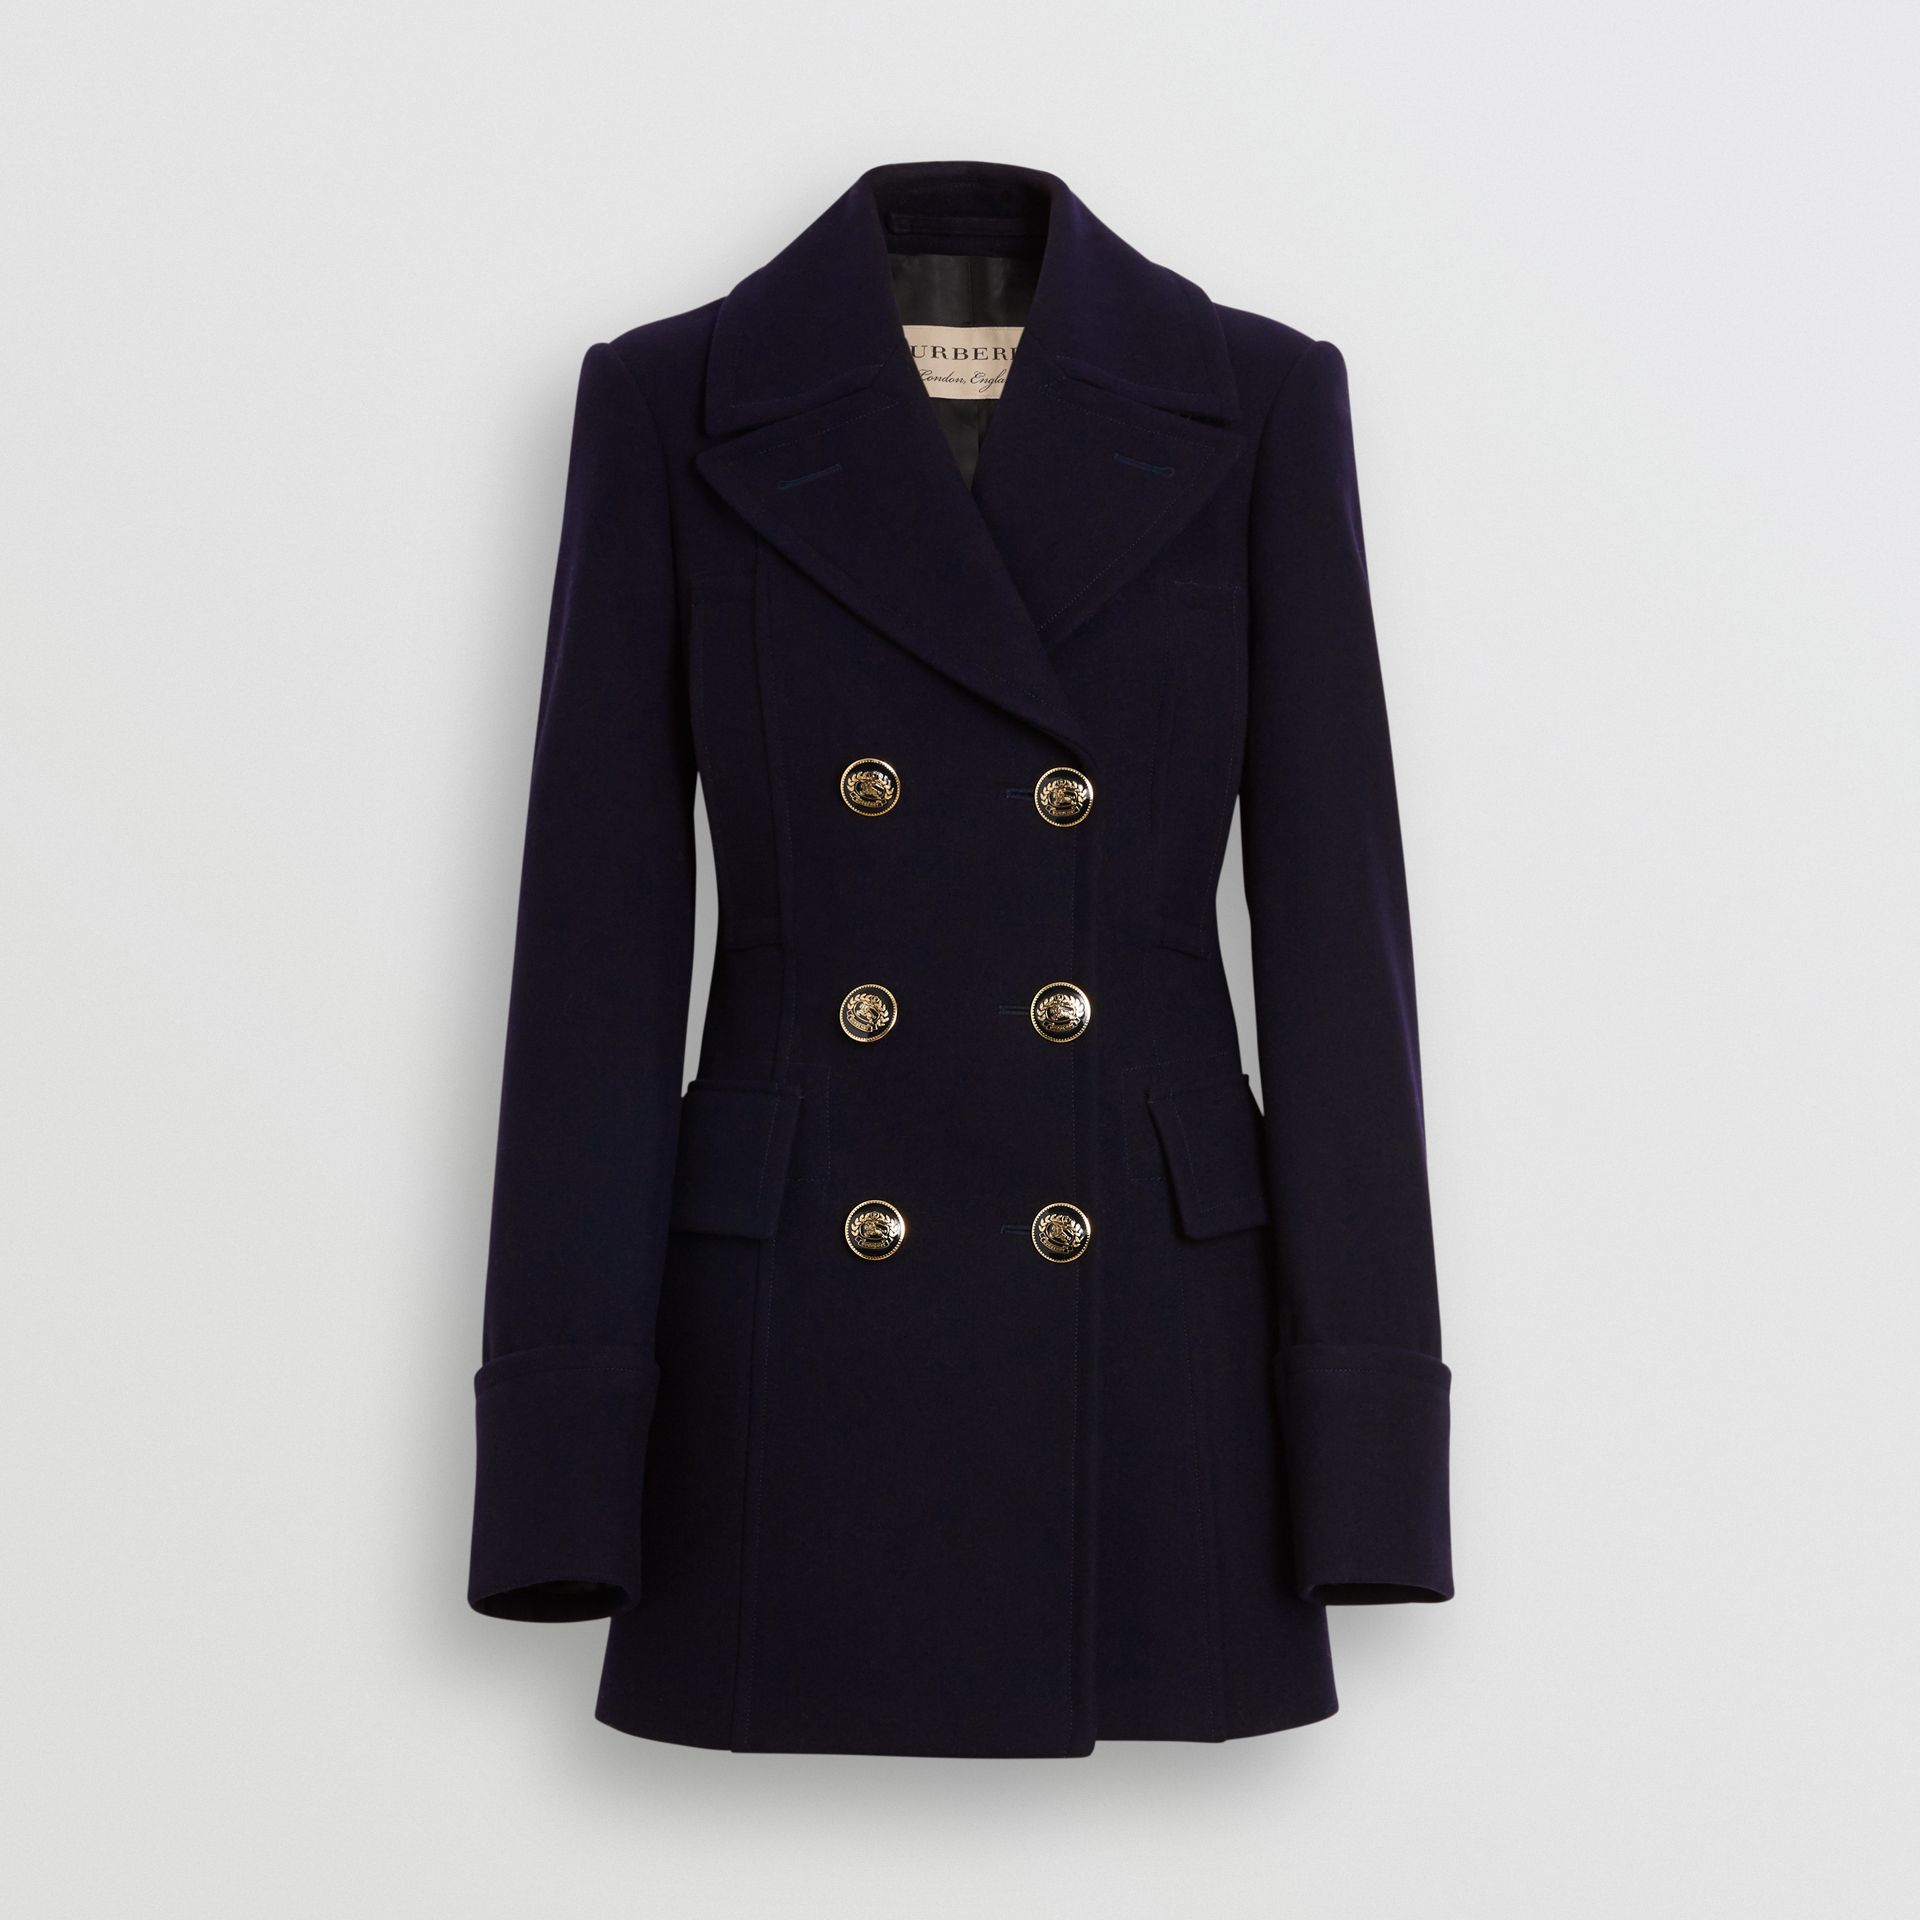 Doeskin Wool Tailored Pea Coat in Navy - Women | Burberry Singapore - gallery image 1